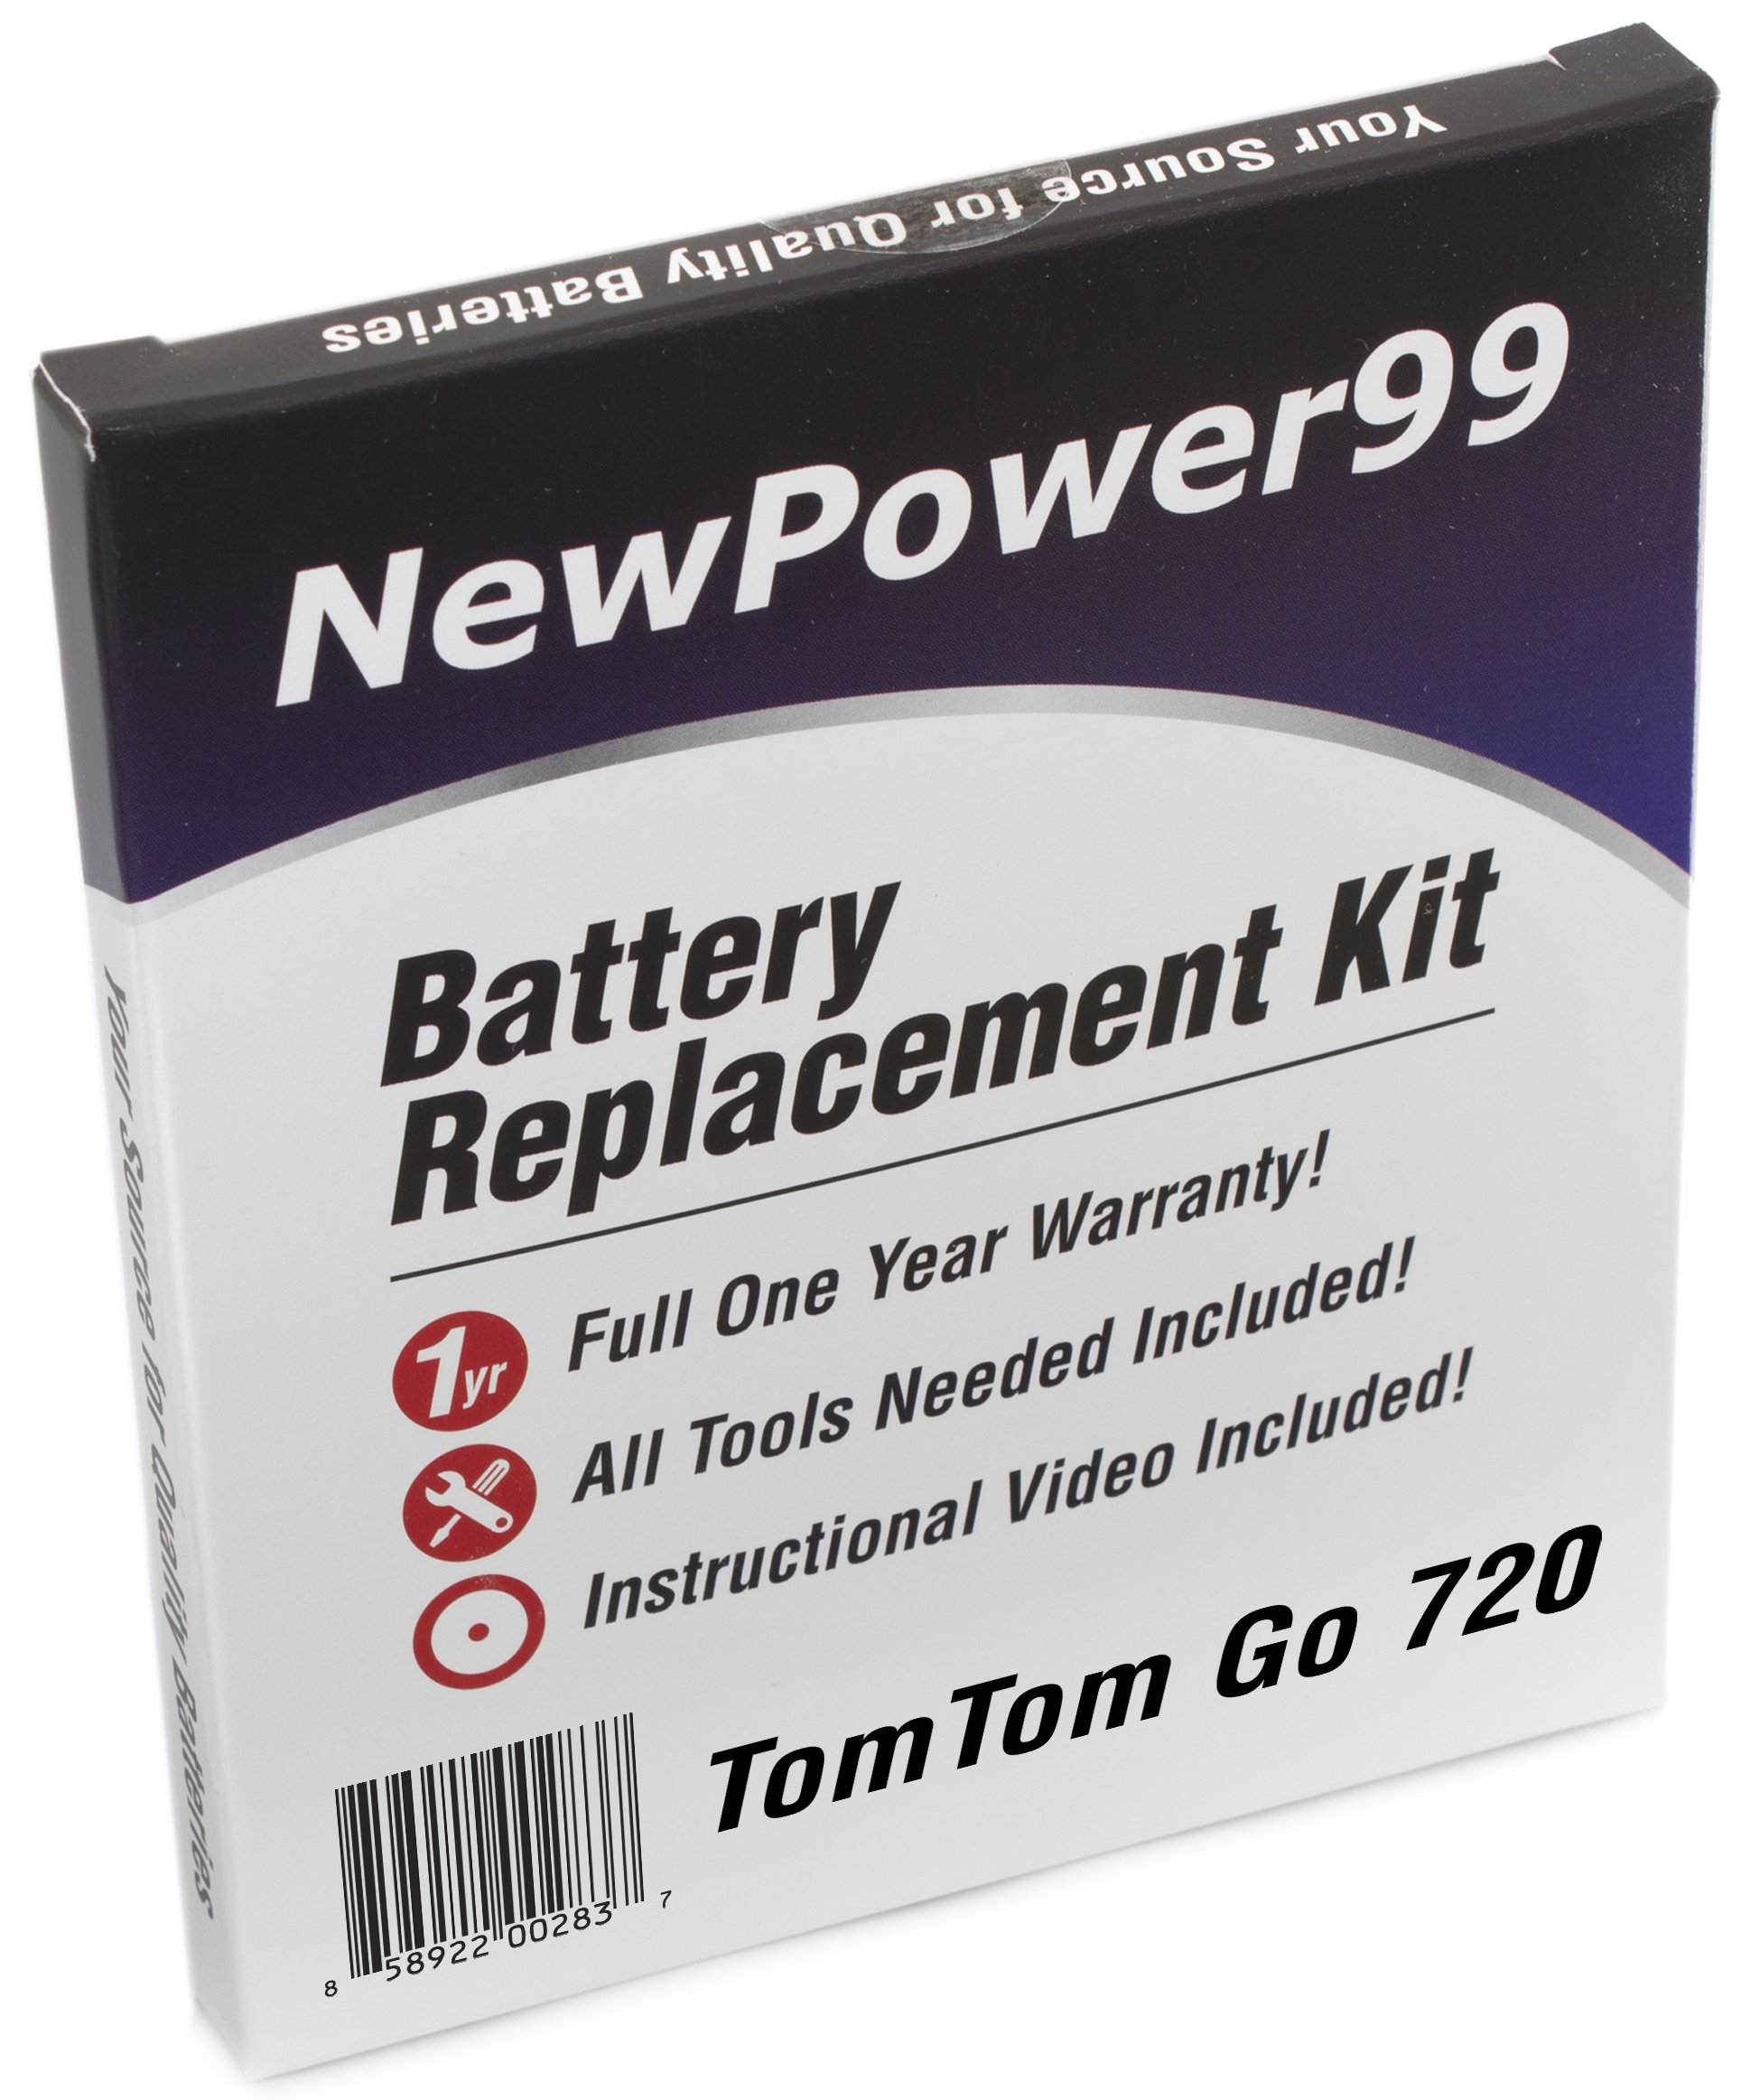 TomTom Go 720 Battery Replacement Kit with Installation Video, Tools, and Extended Life Battery.